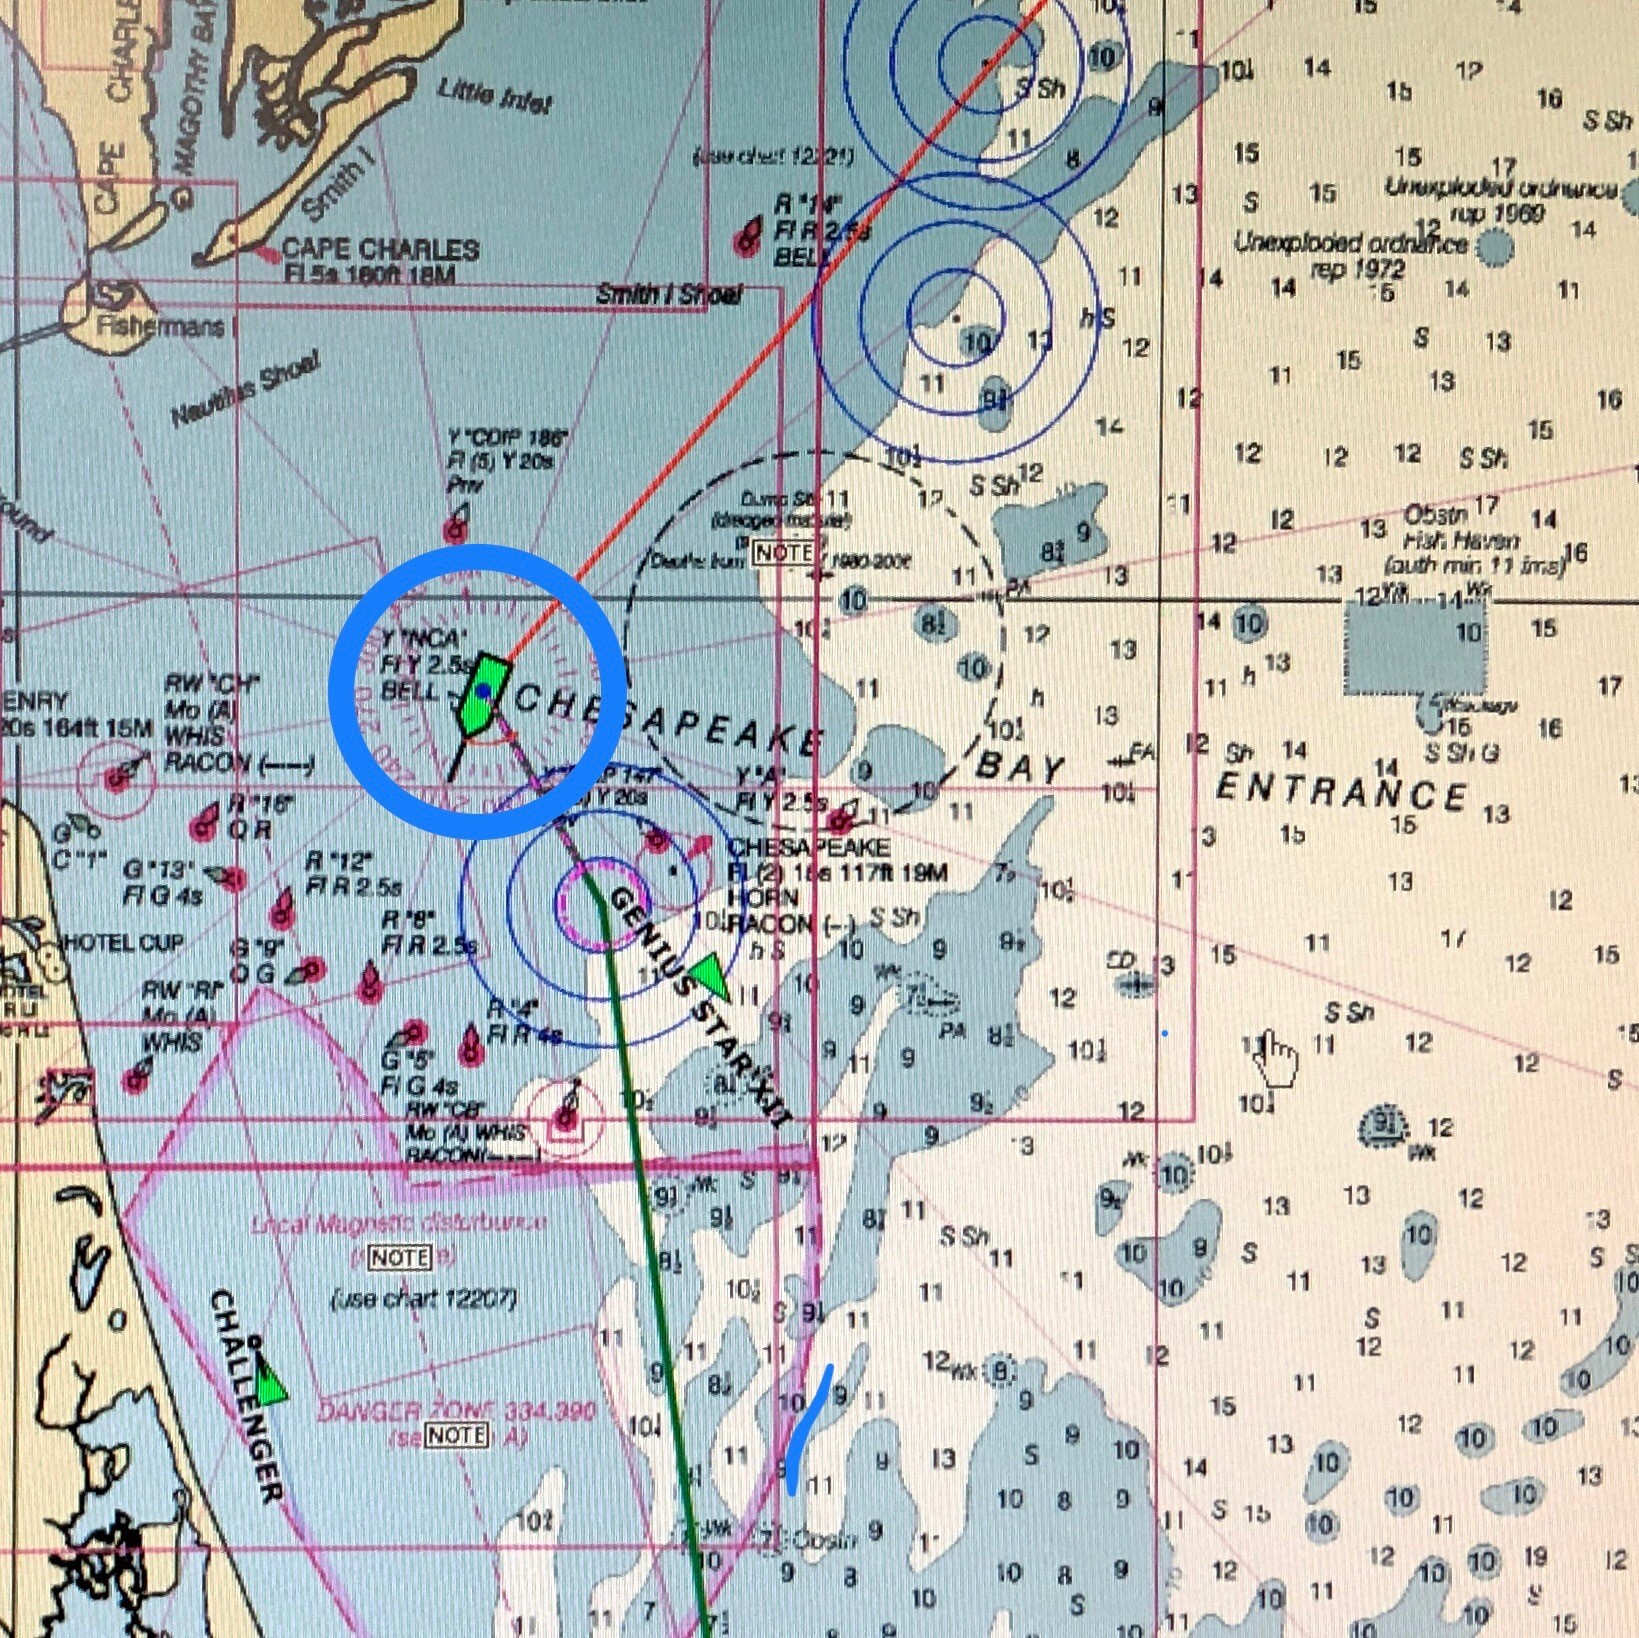 The Bigelow's position at 200pm. Since yesterday, we steamed from off-shore New Jersey to the Chesapeake Bay area. Near here we transferred two NOAA engineers onto another vessel at around 330pm.